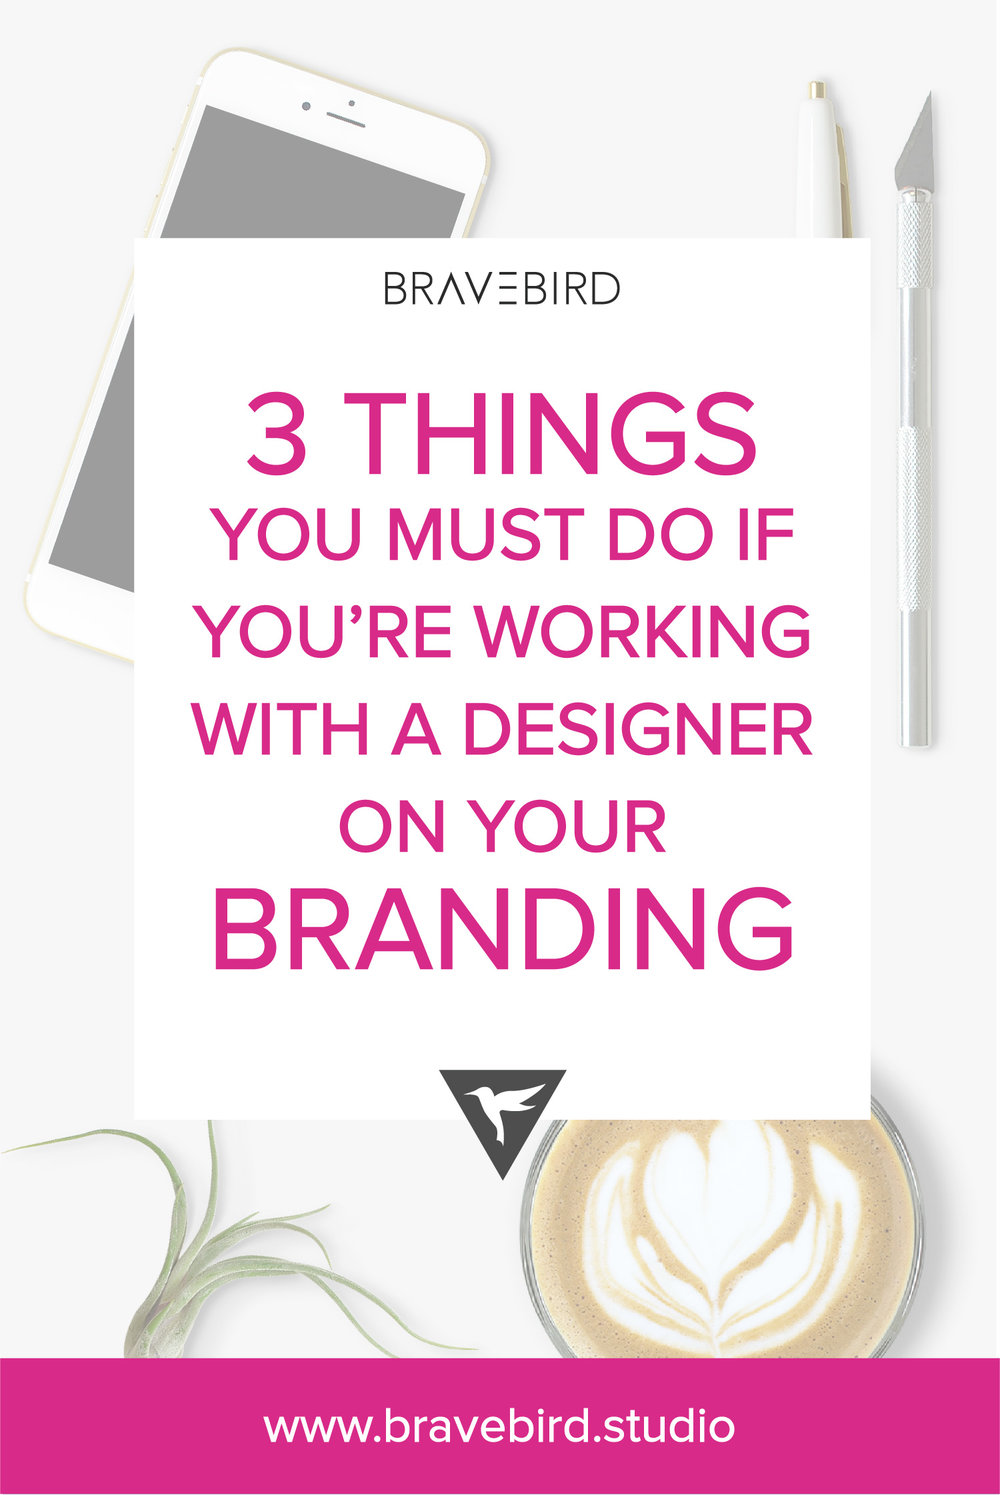 3 Things you must do if you're working with a designer on your branding. | Bravebird Studio | Branding & Web Design